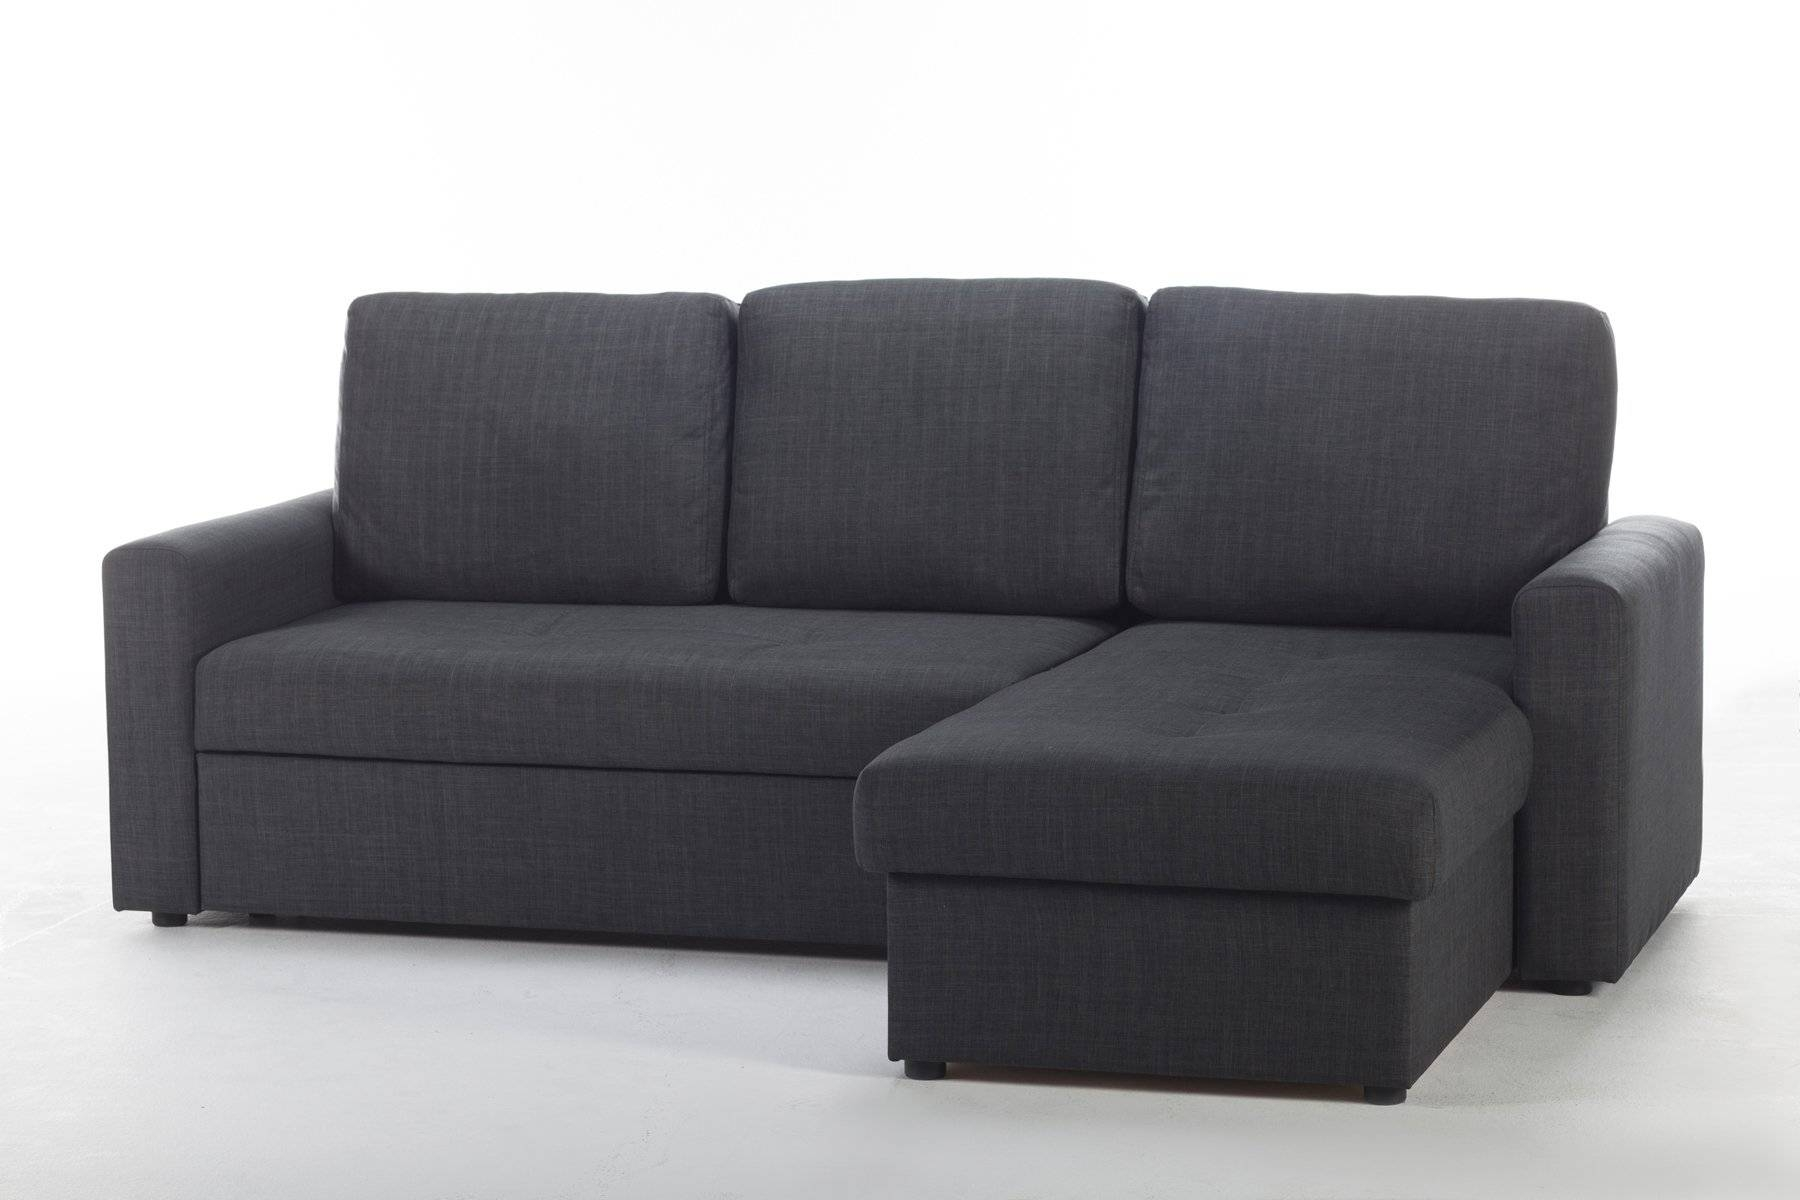 Fethiye Dark Grey Fabric Sectional Sofasunset inside Fabric Sectional Sofa (Image 11 of 30)